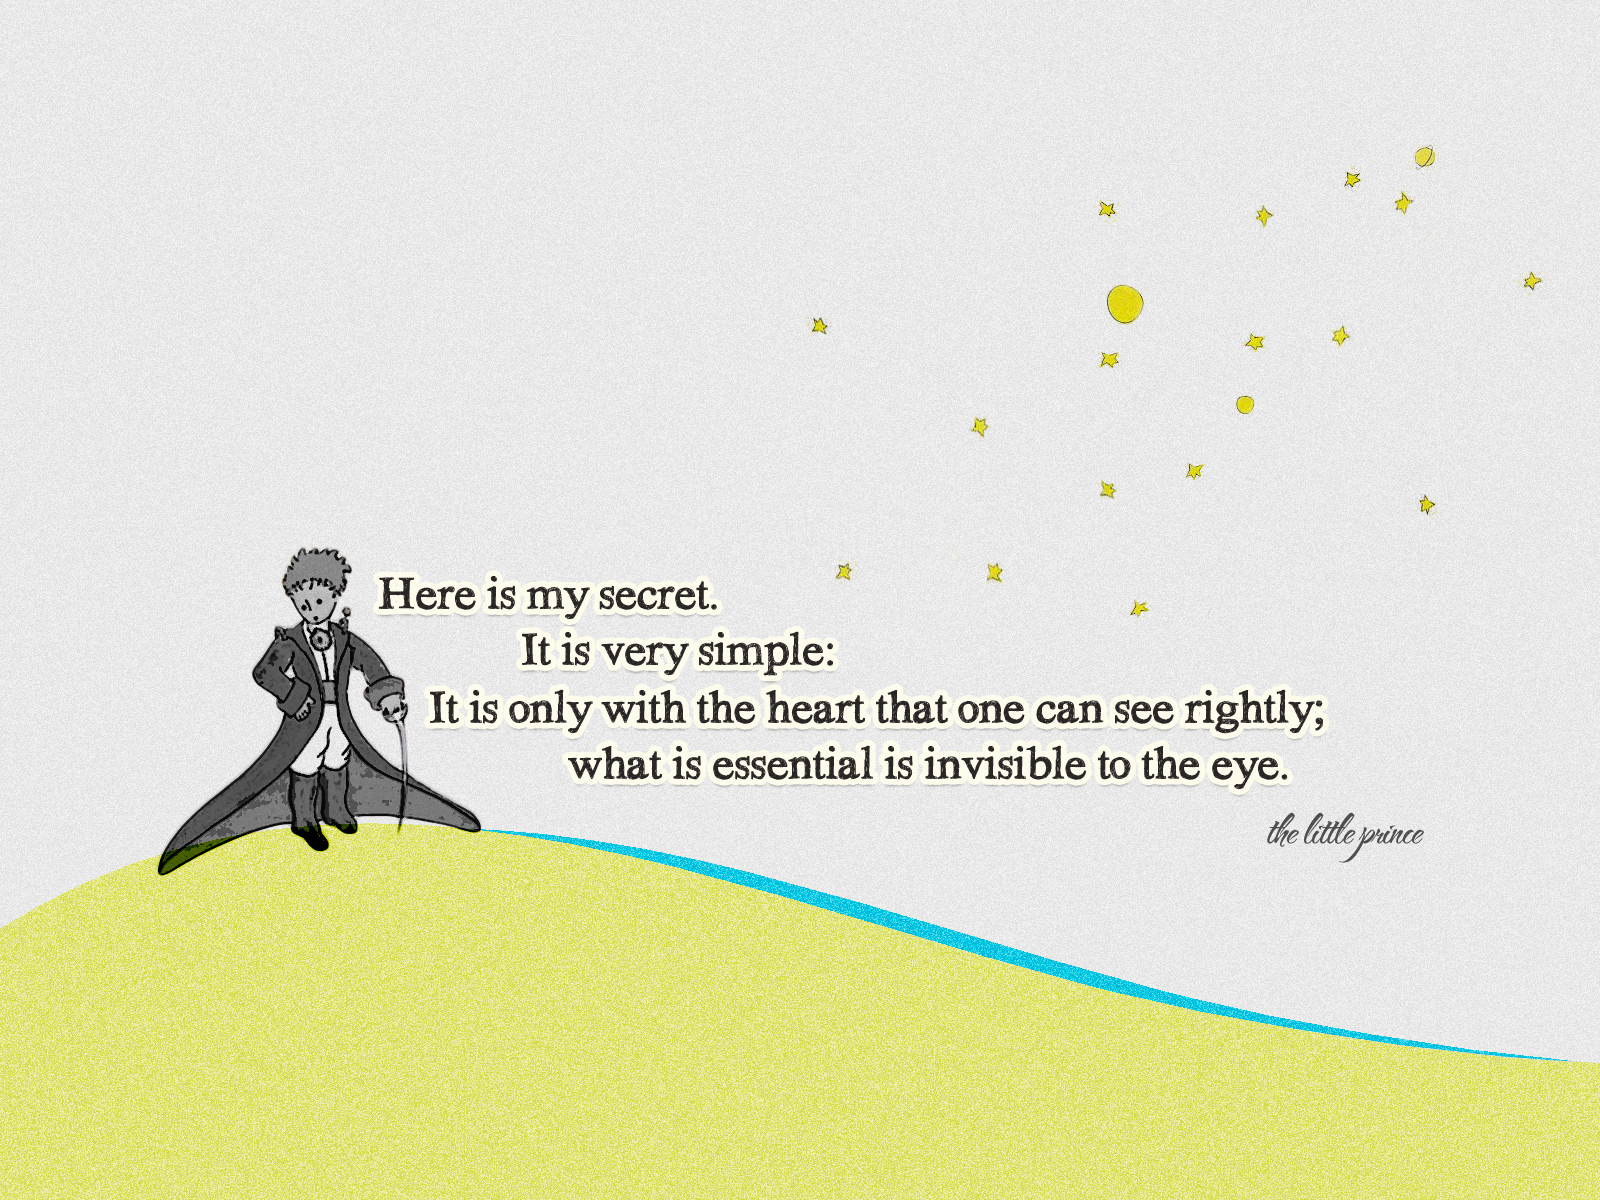 the little prince the little prince search and well said quotes little prince cover photo previous post